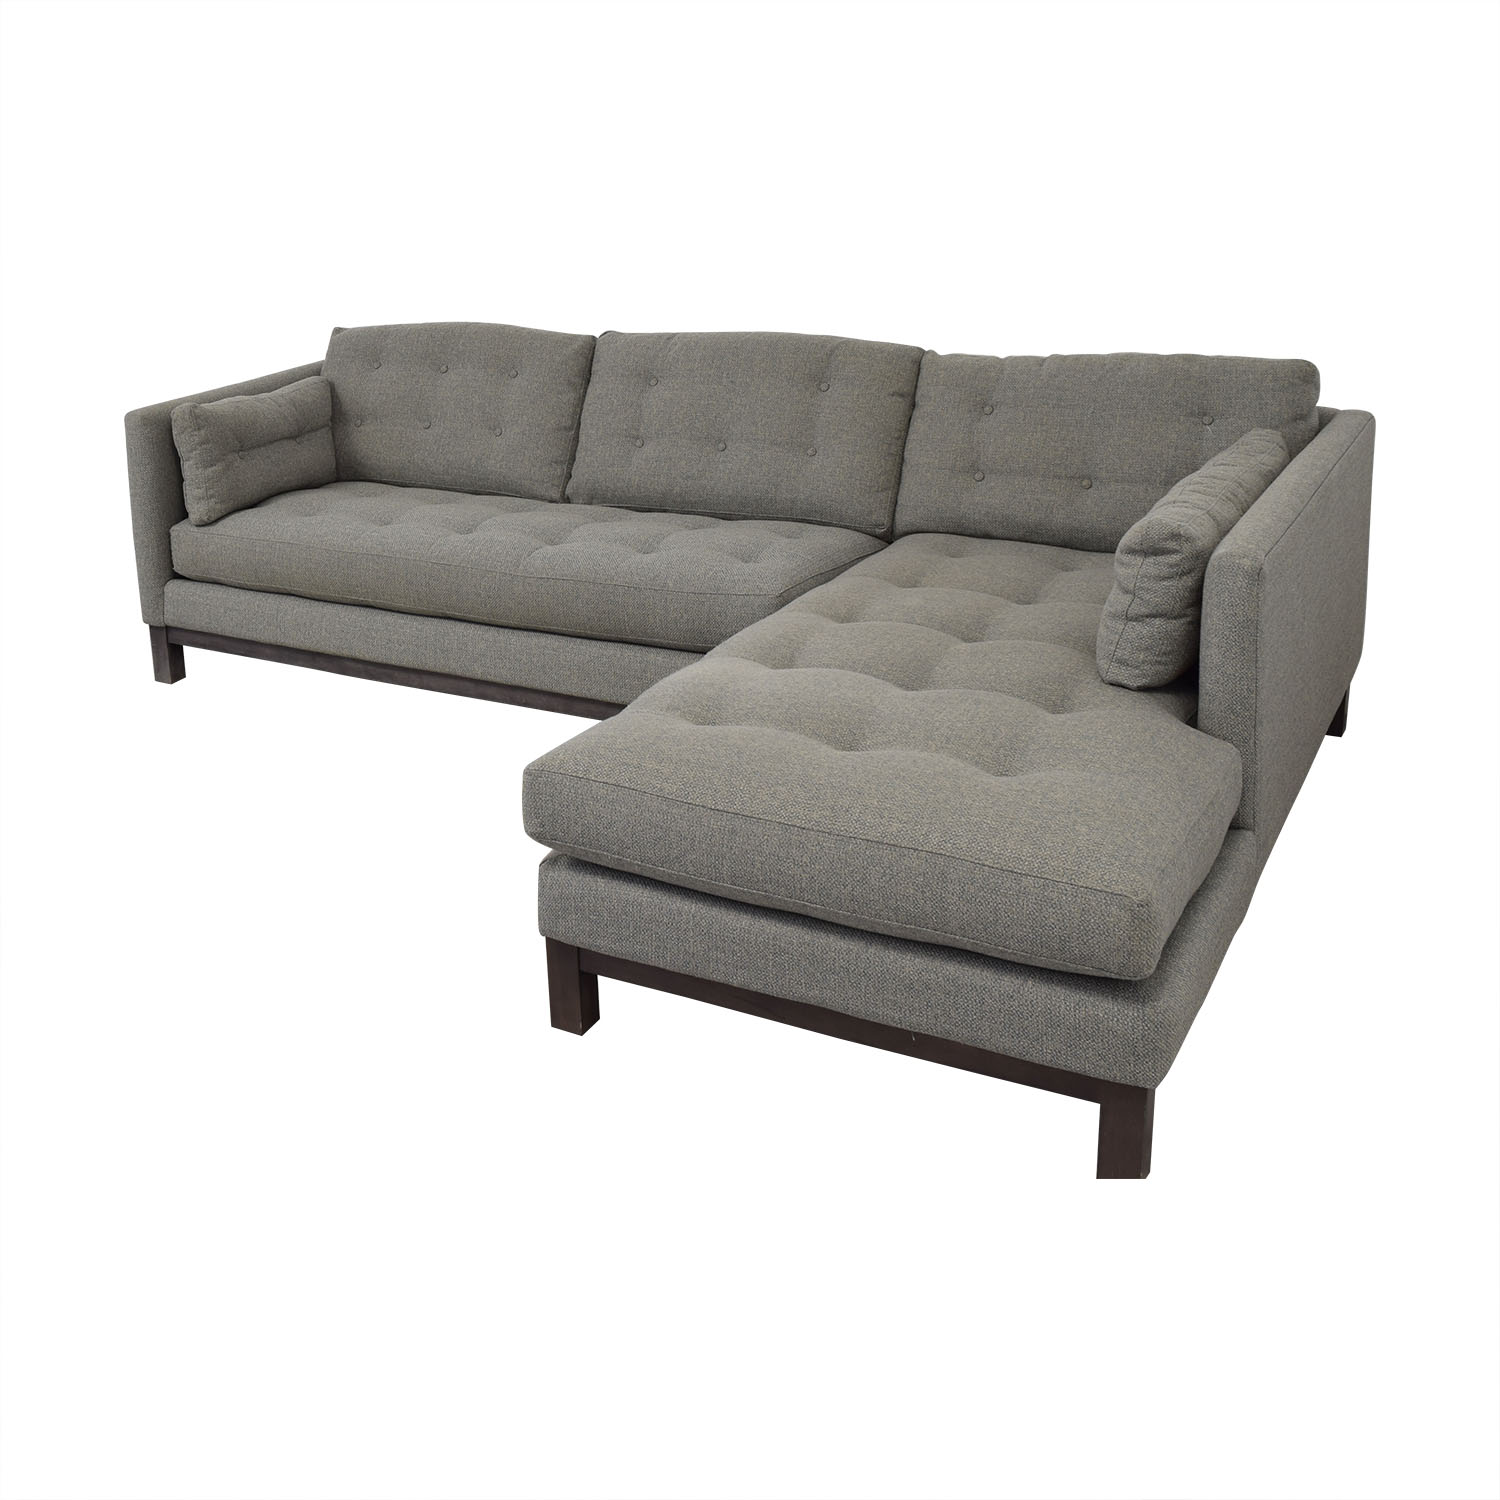 McCreary Modern McCreary Modern Sectional Chaise Sofa discount